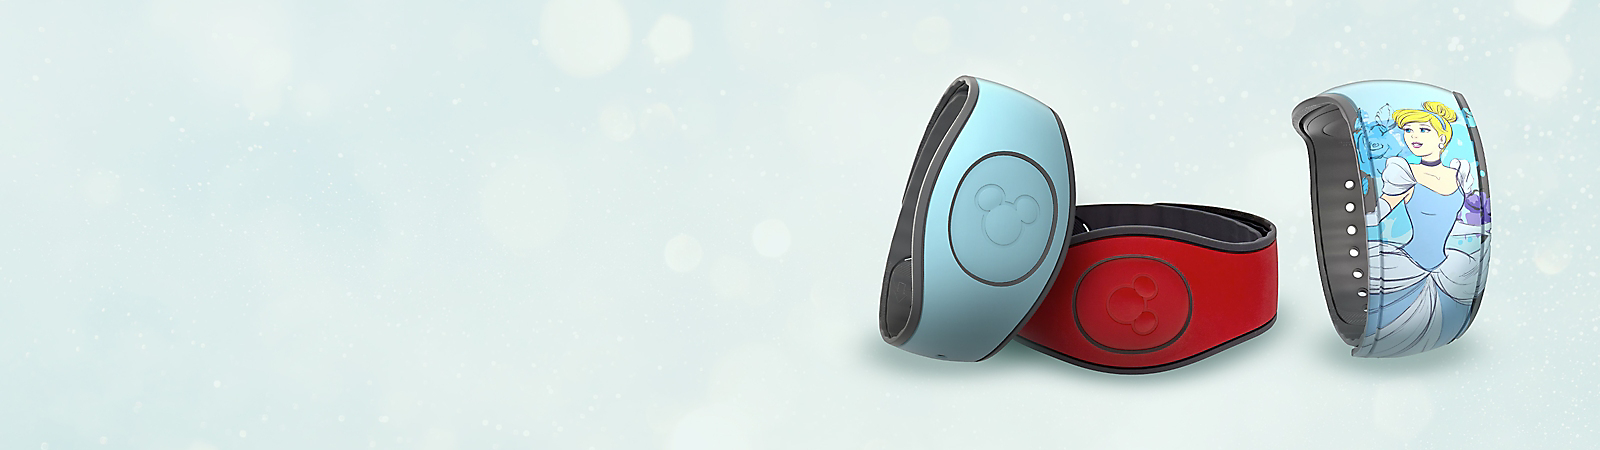 Background image of MagicBand